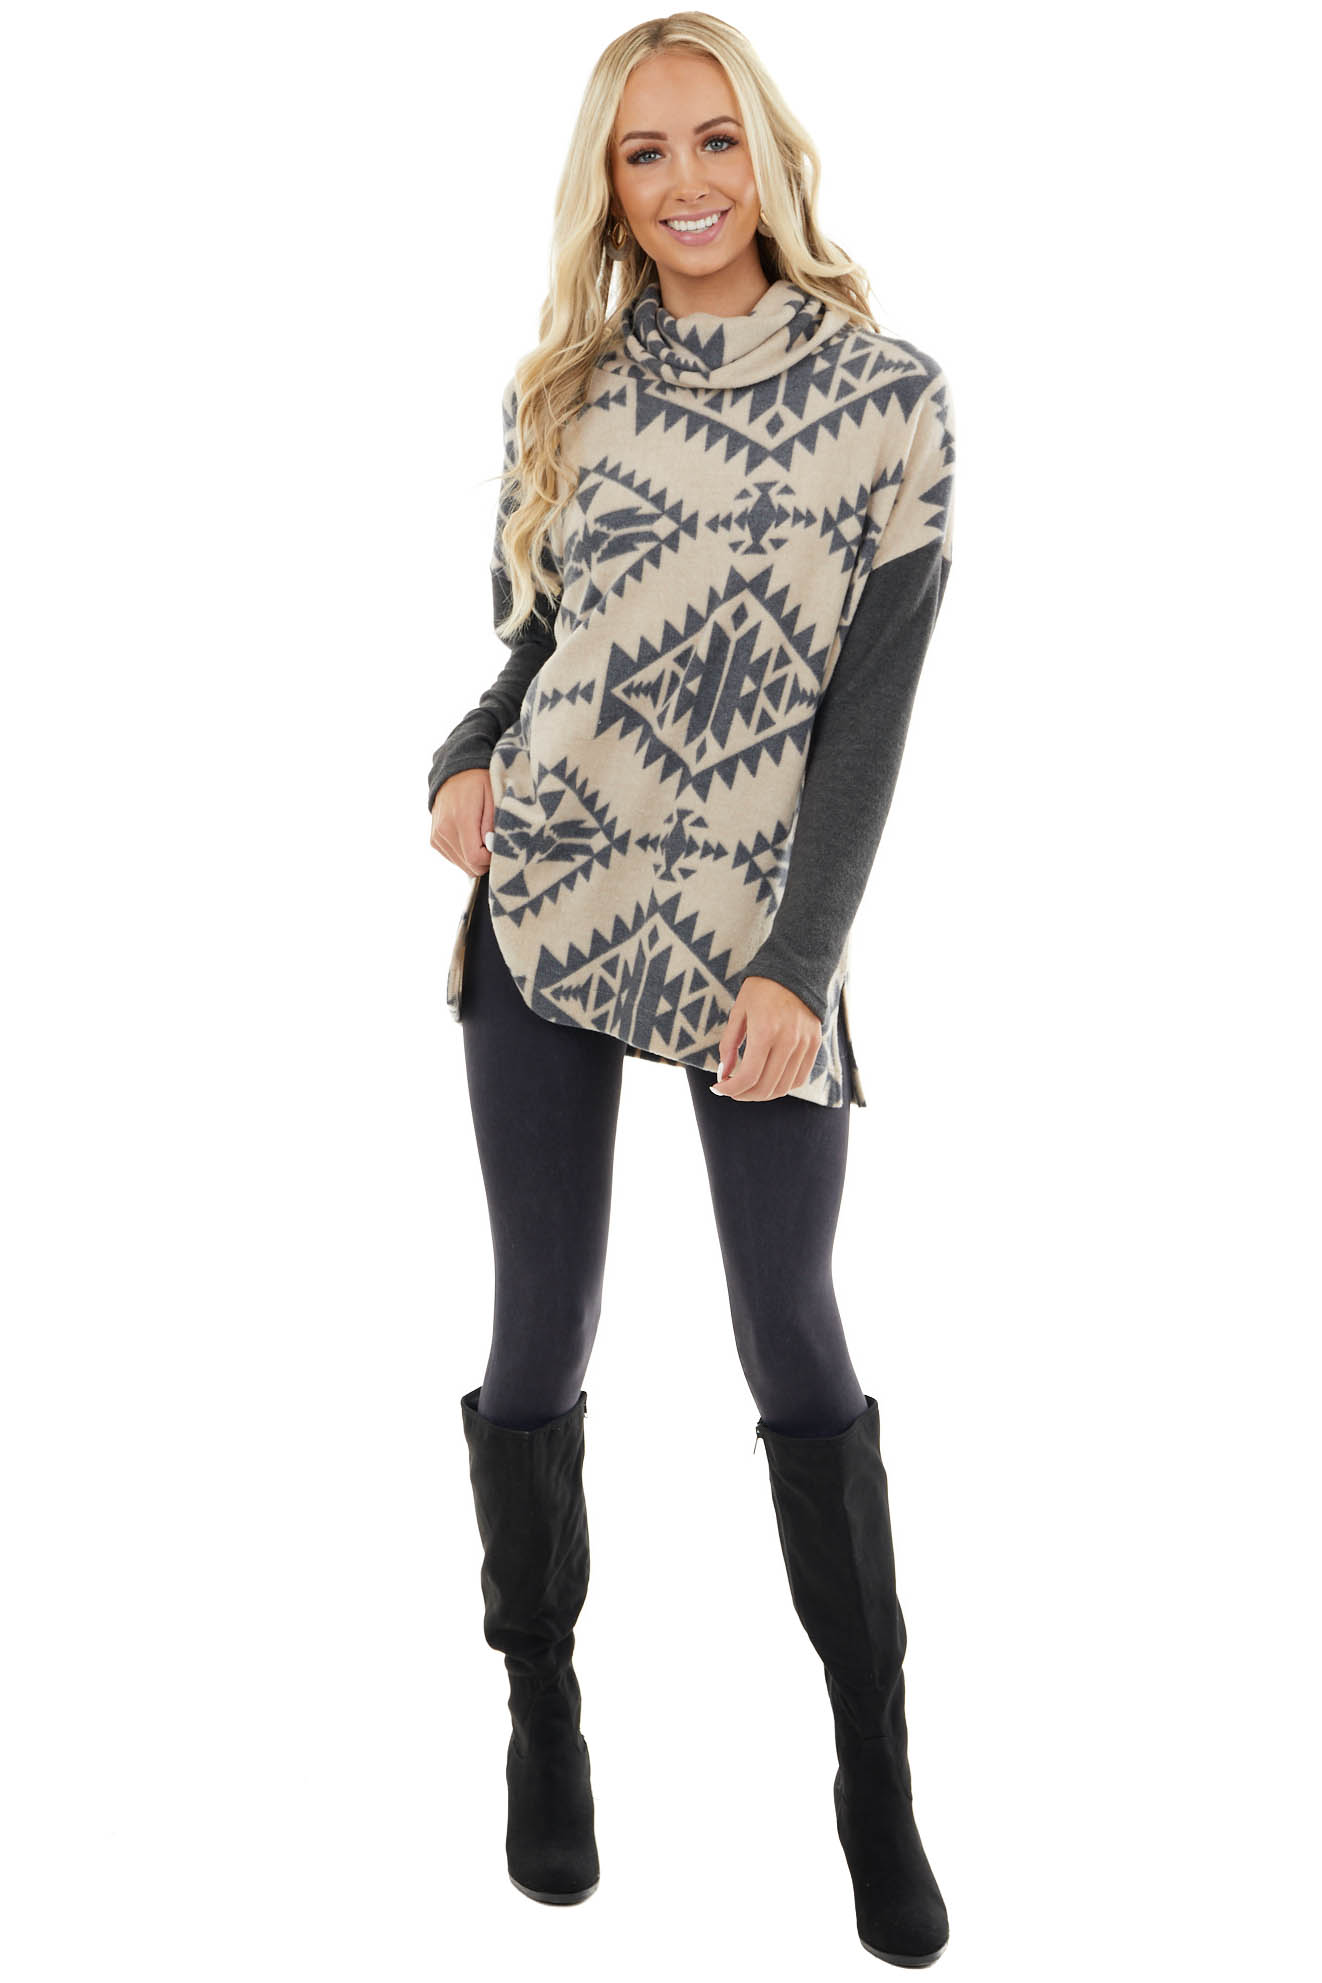 Oatmeal and Stormy Aztec Print Oversize Top with Cowl Neck